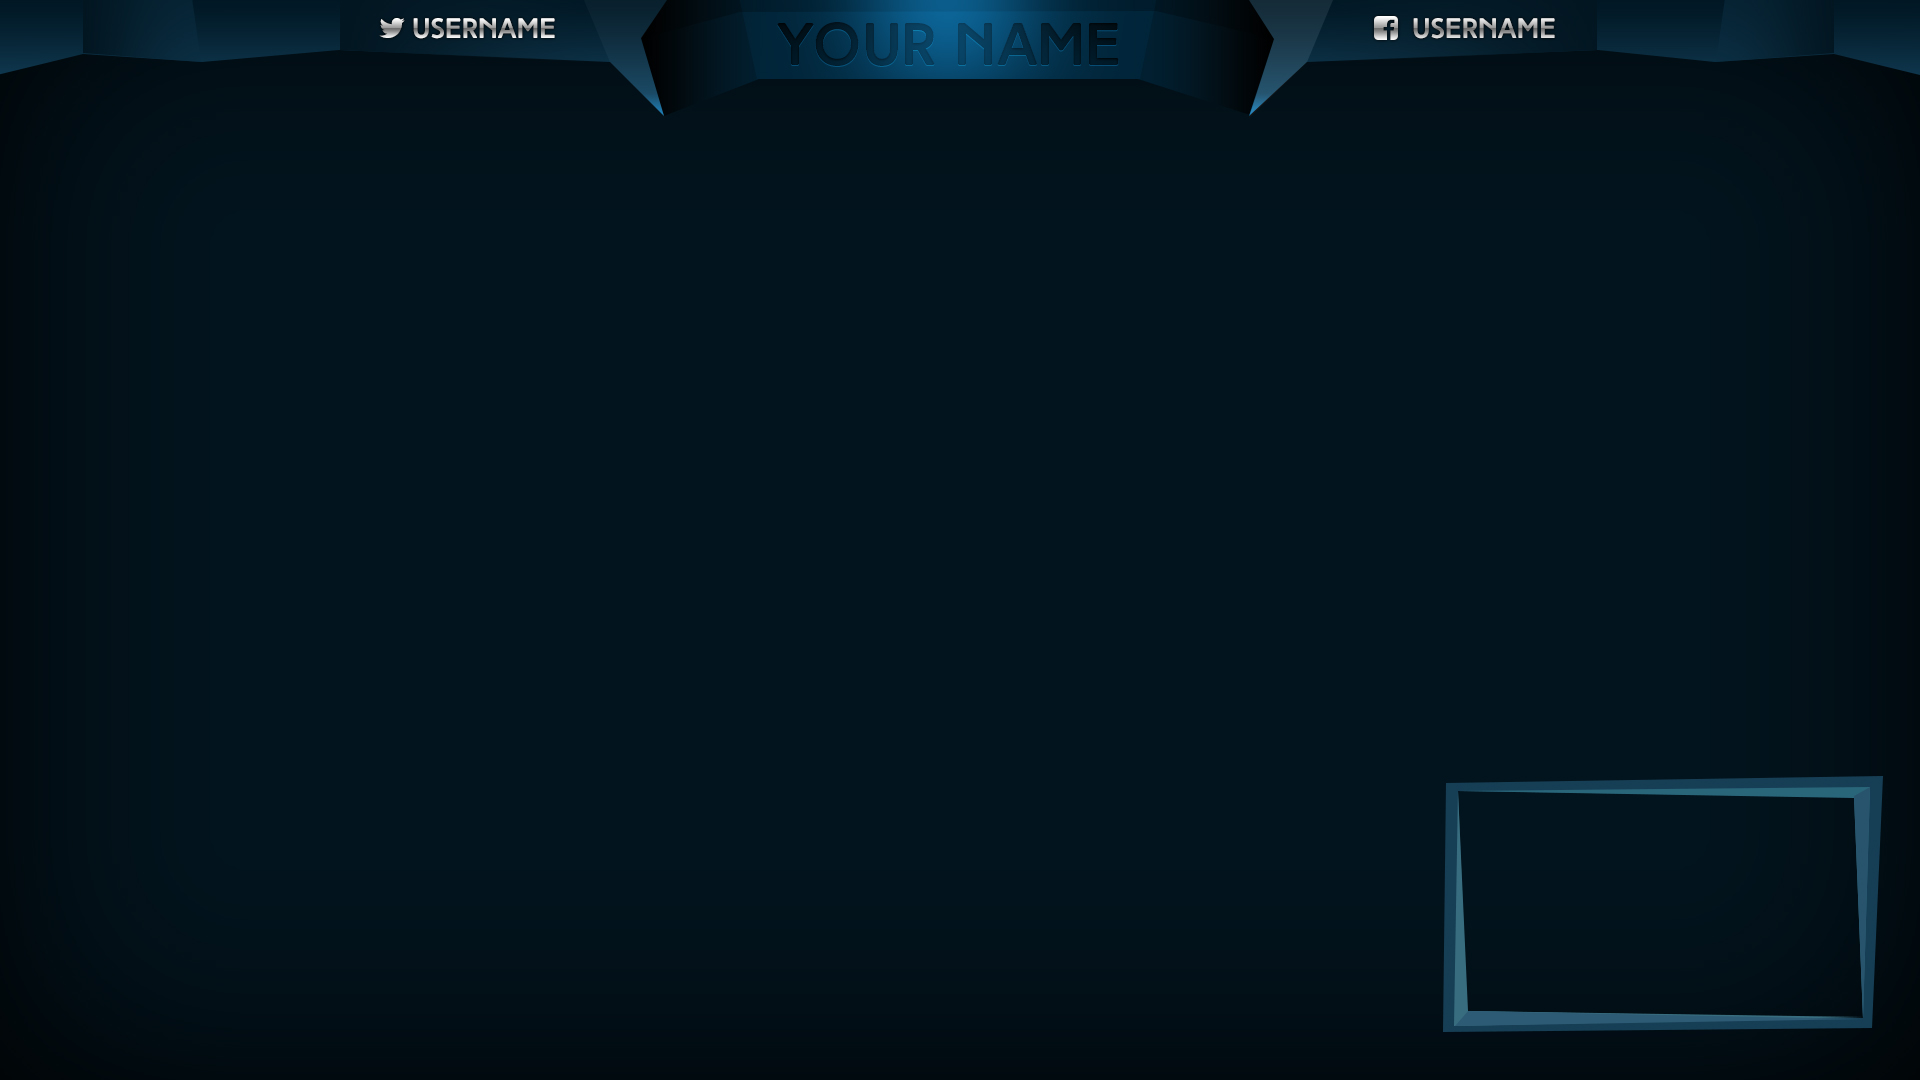 twitch layout template - 14 custom twitch overlays psd images twitch overlay